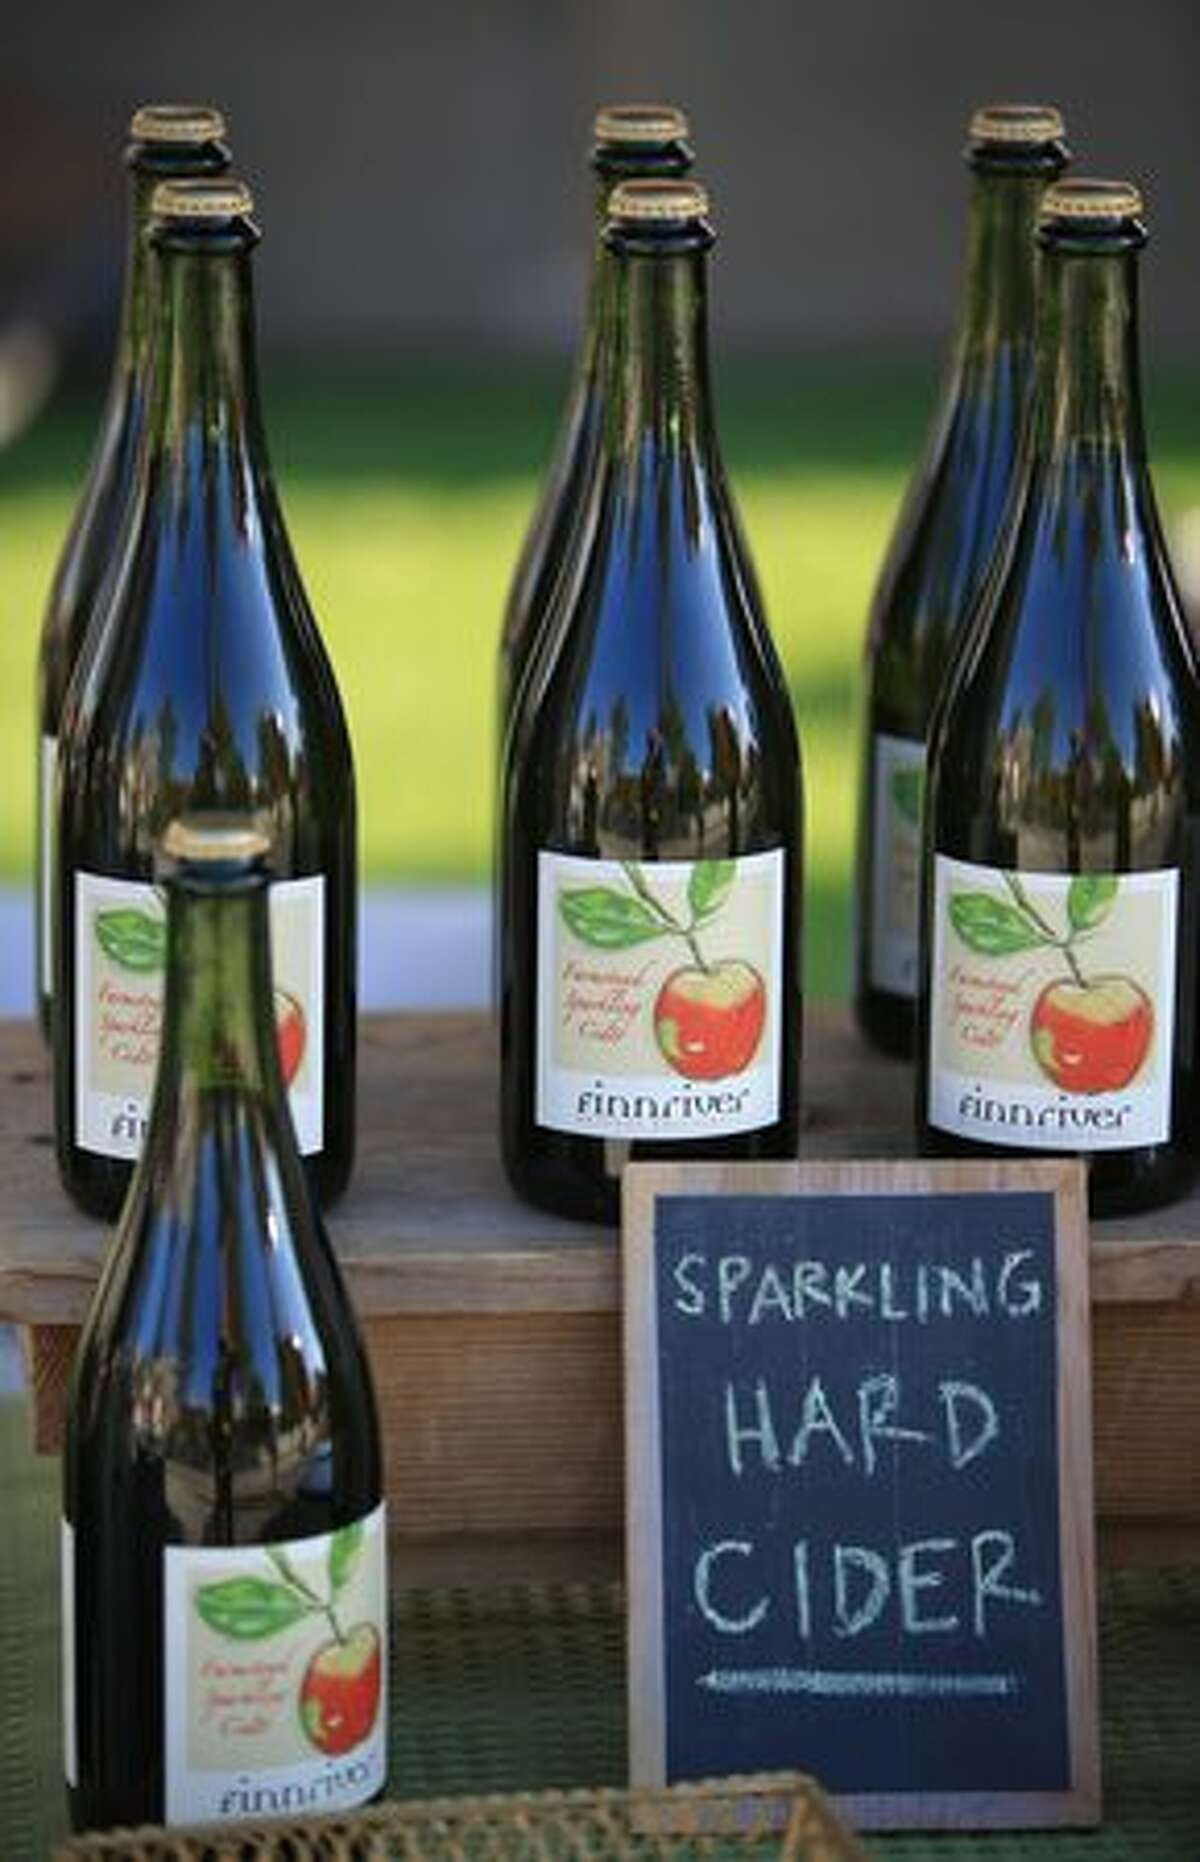 Hard cider from Finnriver organic produce is shown during the Olympic Sculpture Park Farmers Market.